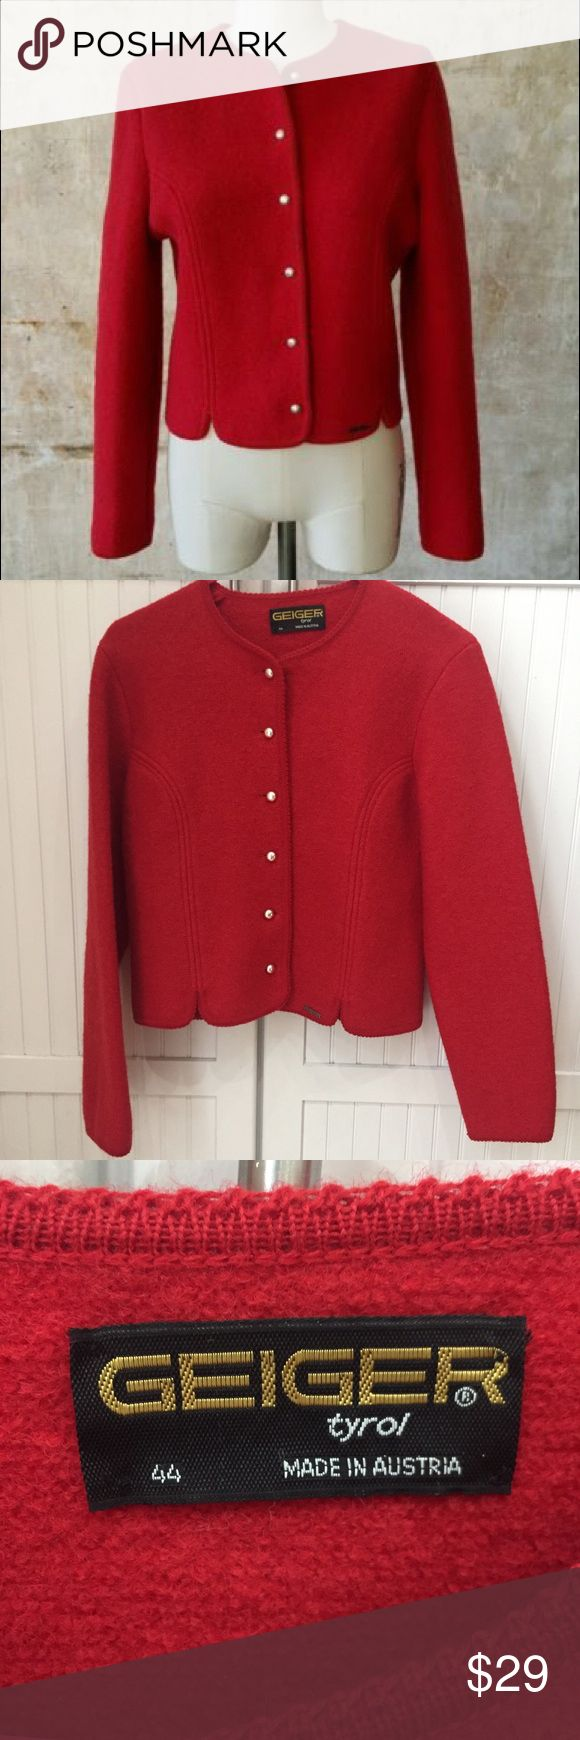 Geiger 100% wool jacket Made in Austria / EU Size 44 translates to a size 10 US / never worn! No signs of wear / feel free to ask questions or make an offer!  Geiger Jackets & Coats